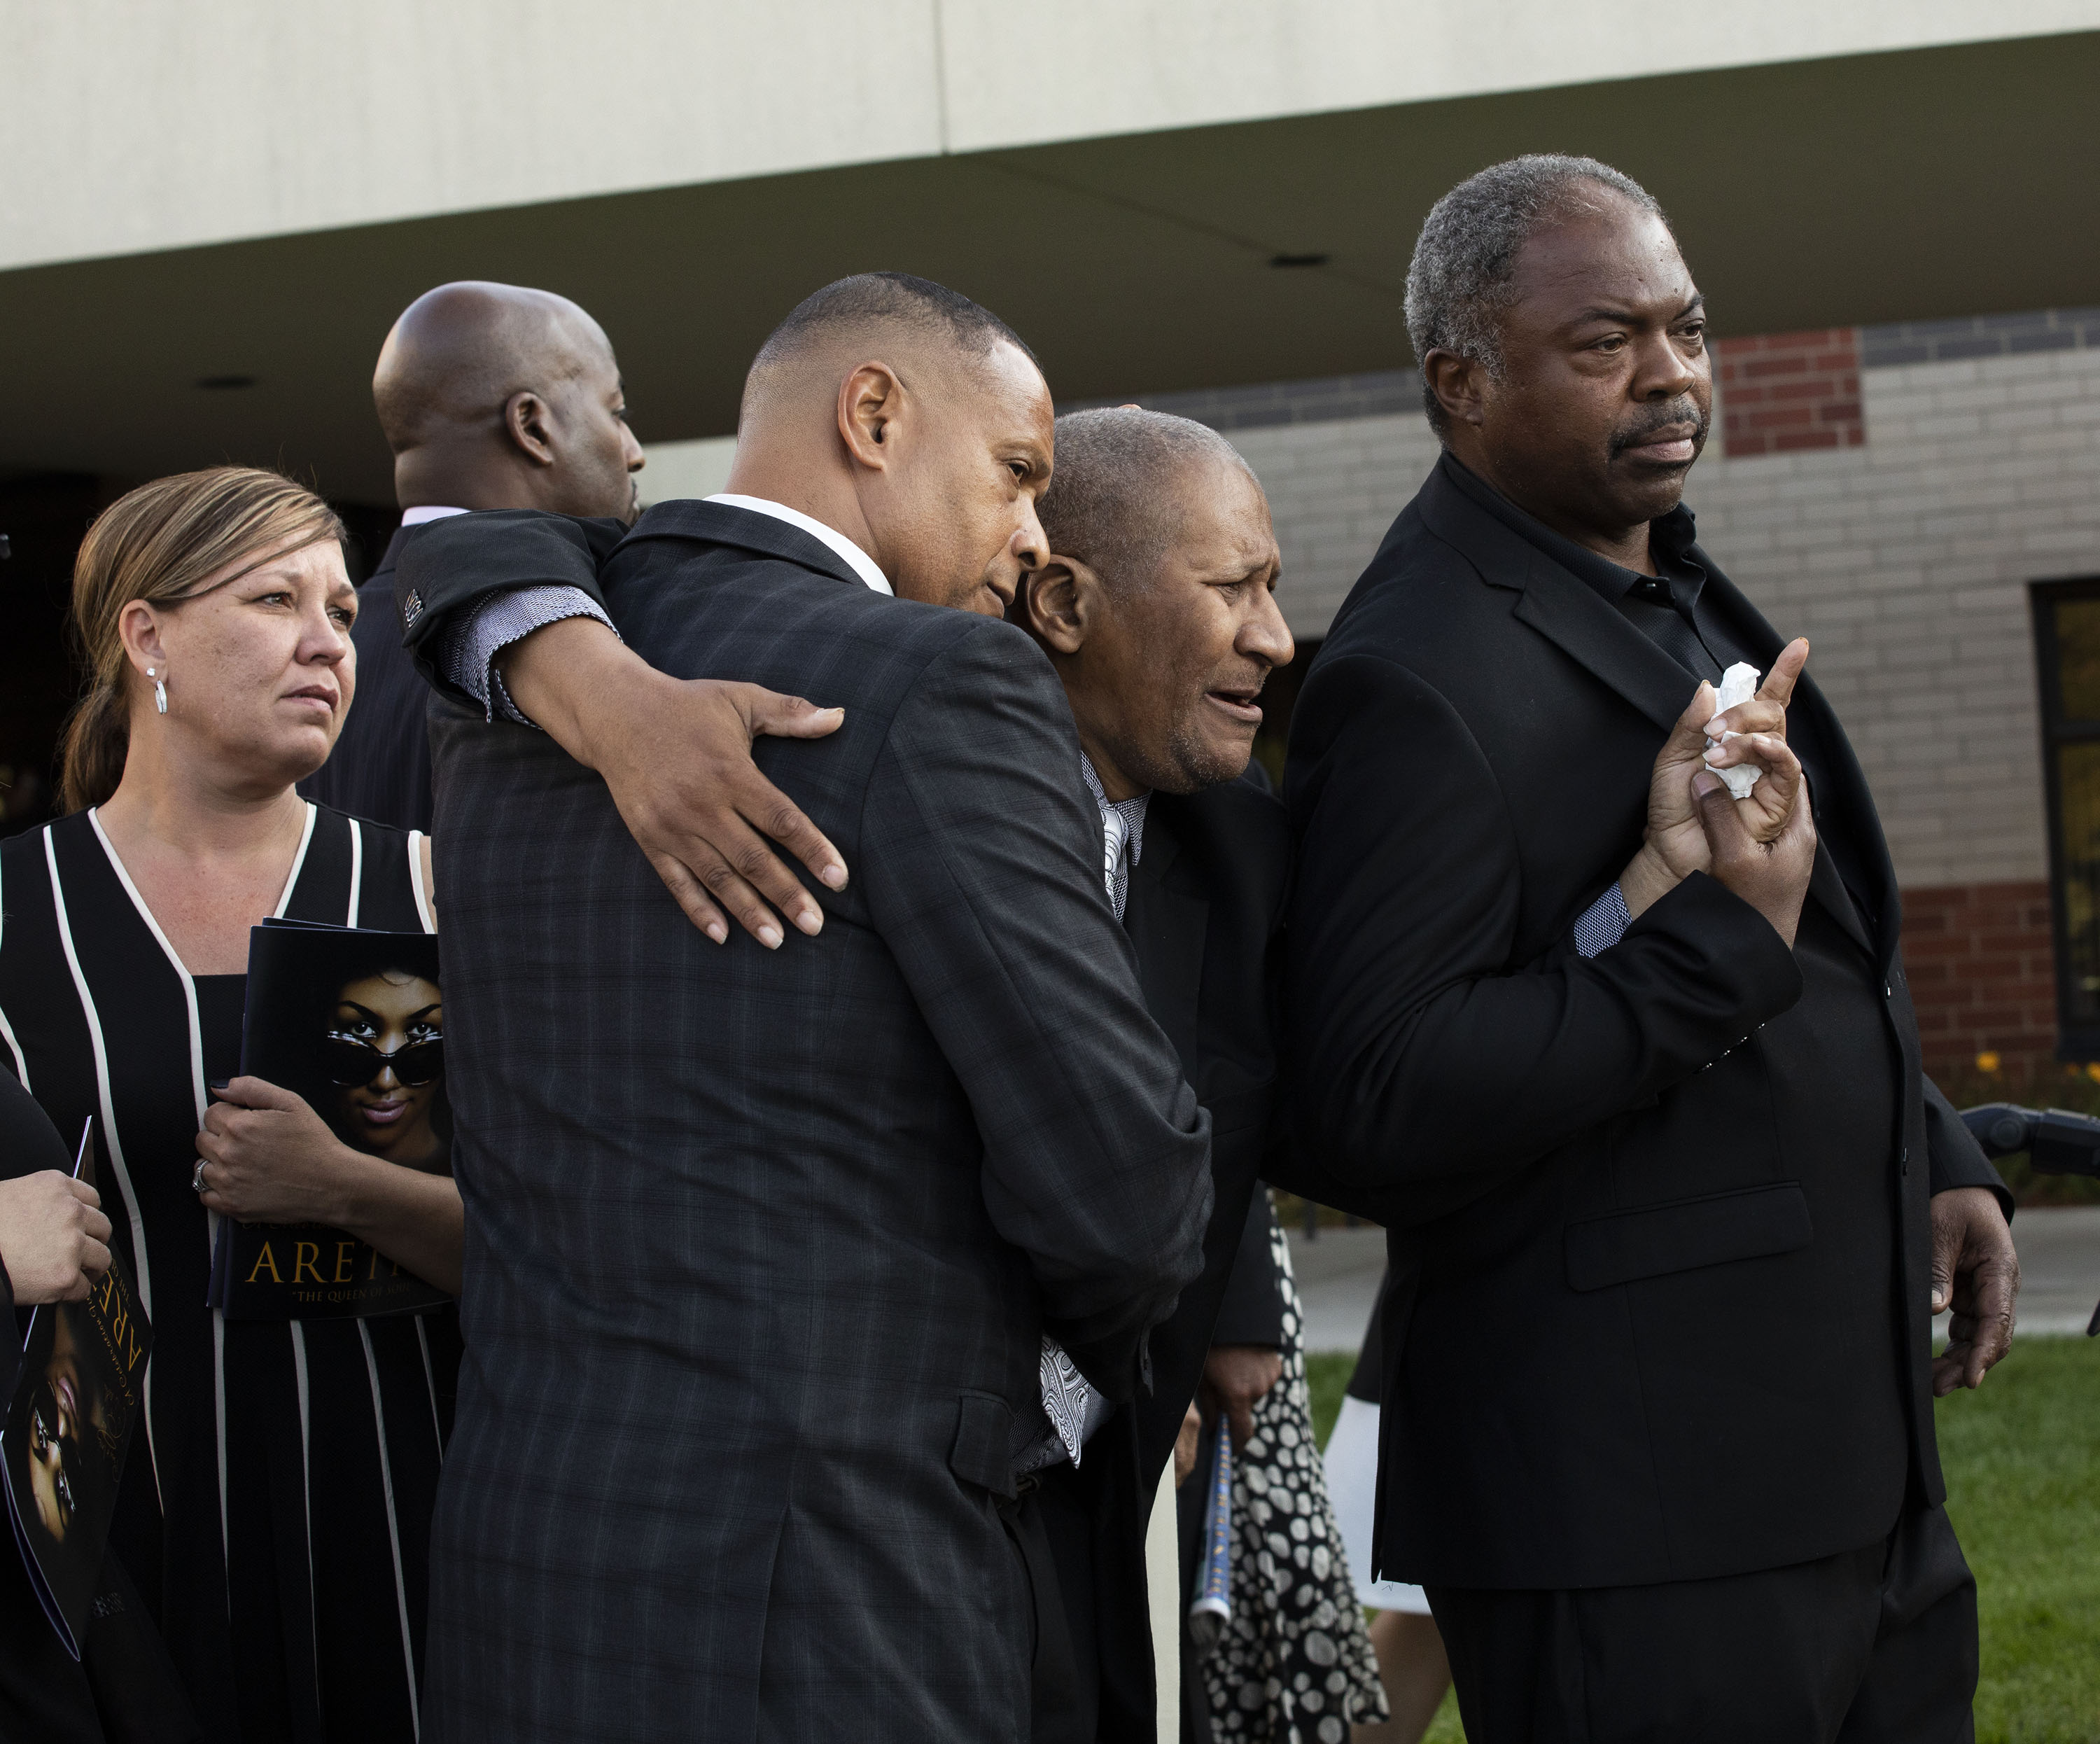 Aretha Franklin's eldest son, Clarence Franklin, pictured at the center of two men mourns the death of his mother outside Greater Grace Temple following her funeral on August 31, 2018 in Detroit, Michigan.   Source: Getty Images